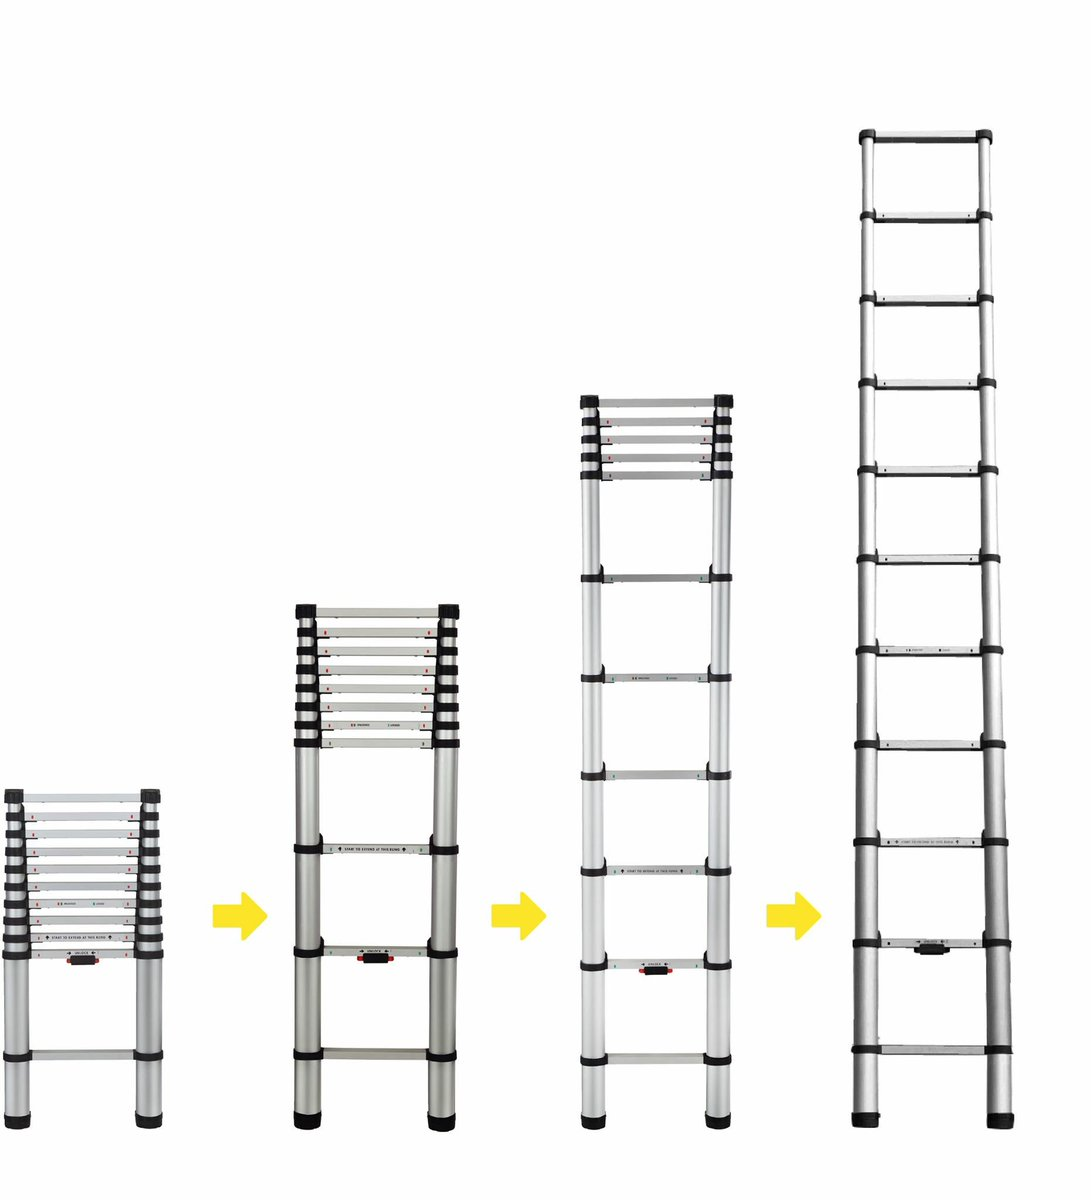 Do Telescopic Ladders Have To Be Fully Extended?